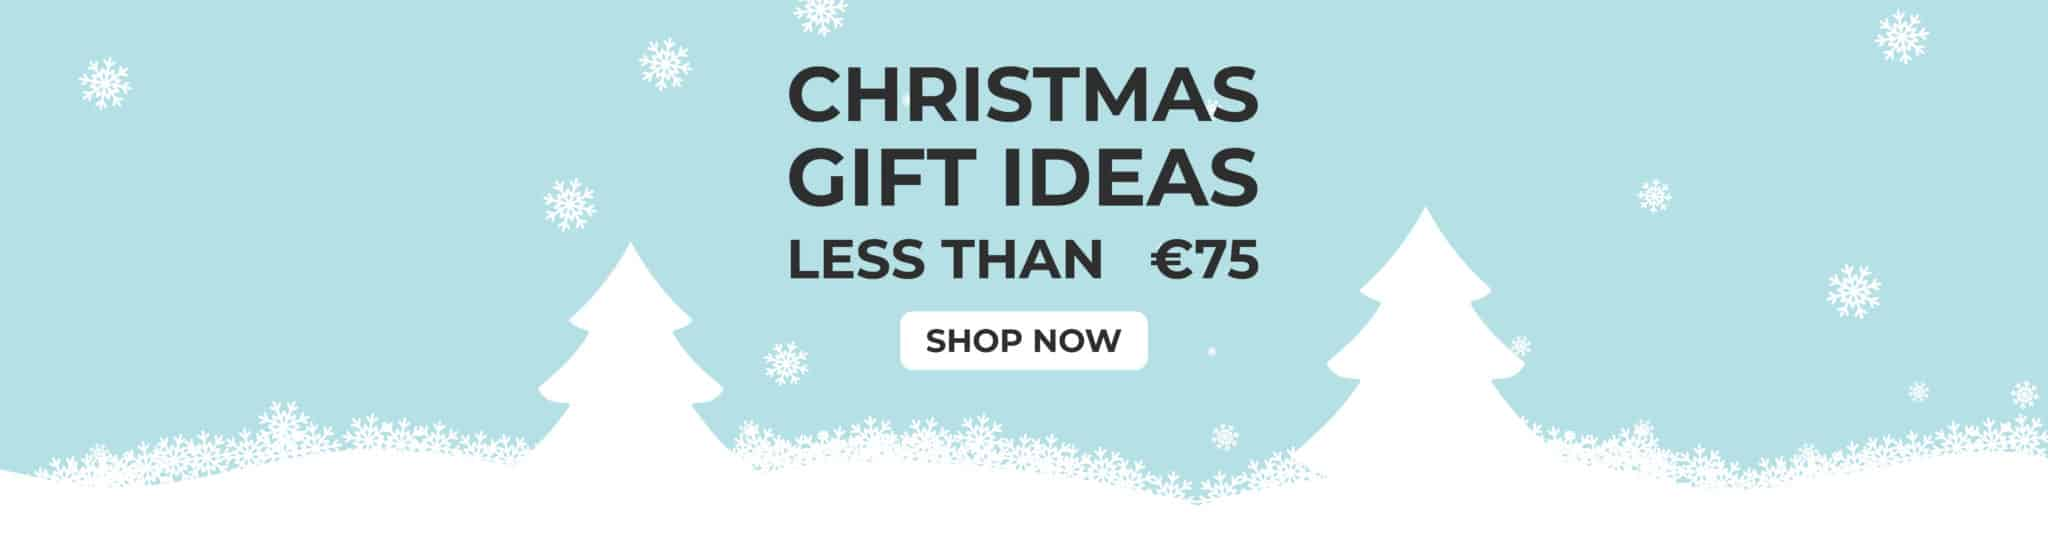 Gifts Less Than €75